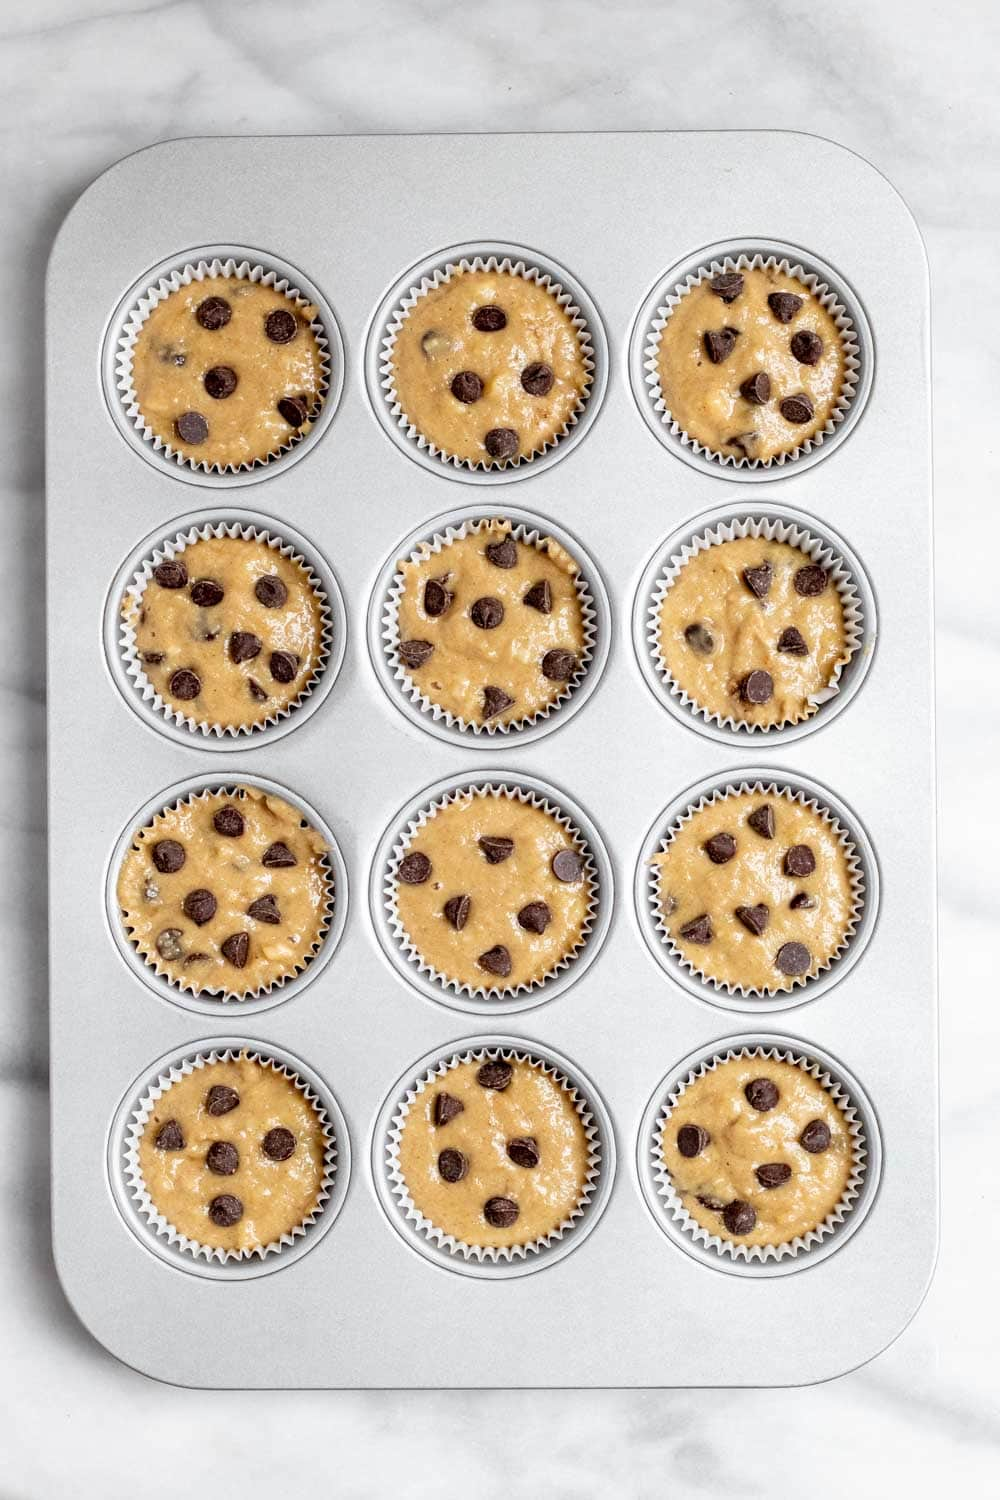 Muffins in a muffin tray before going in the oven.